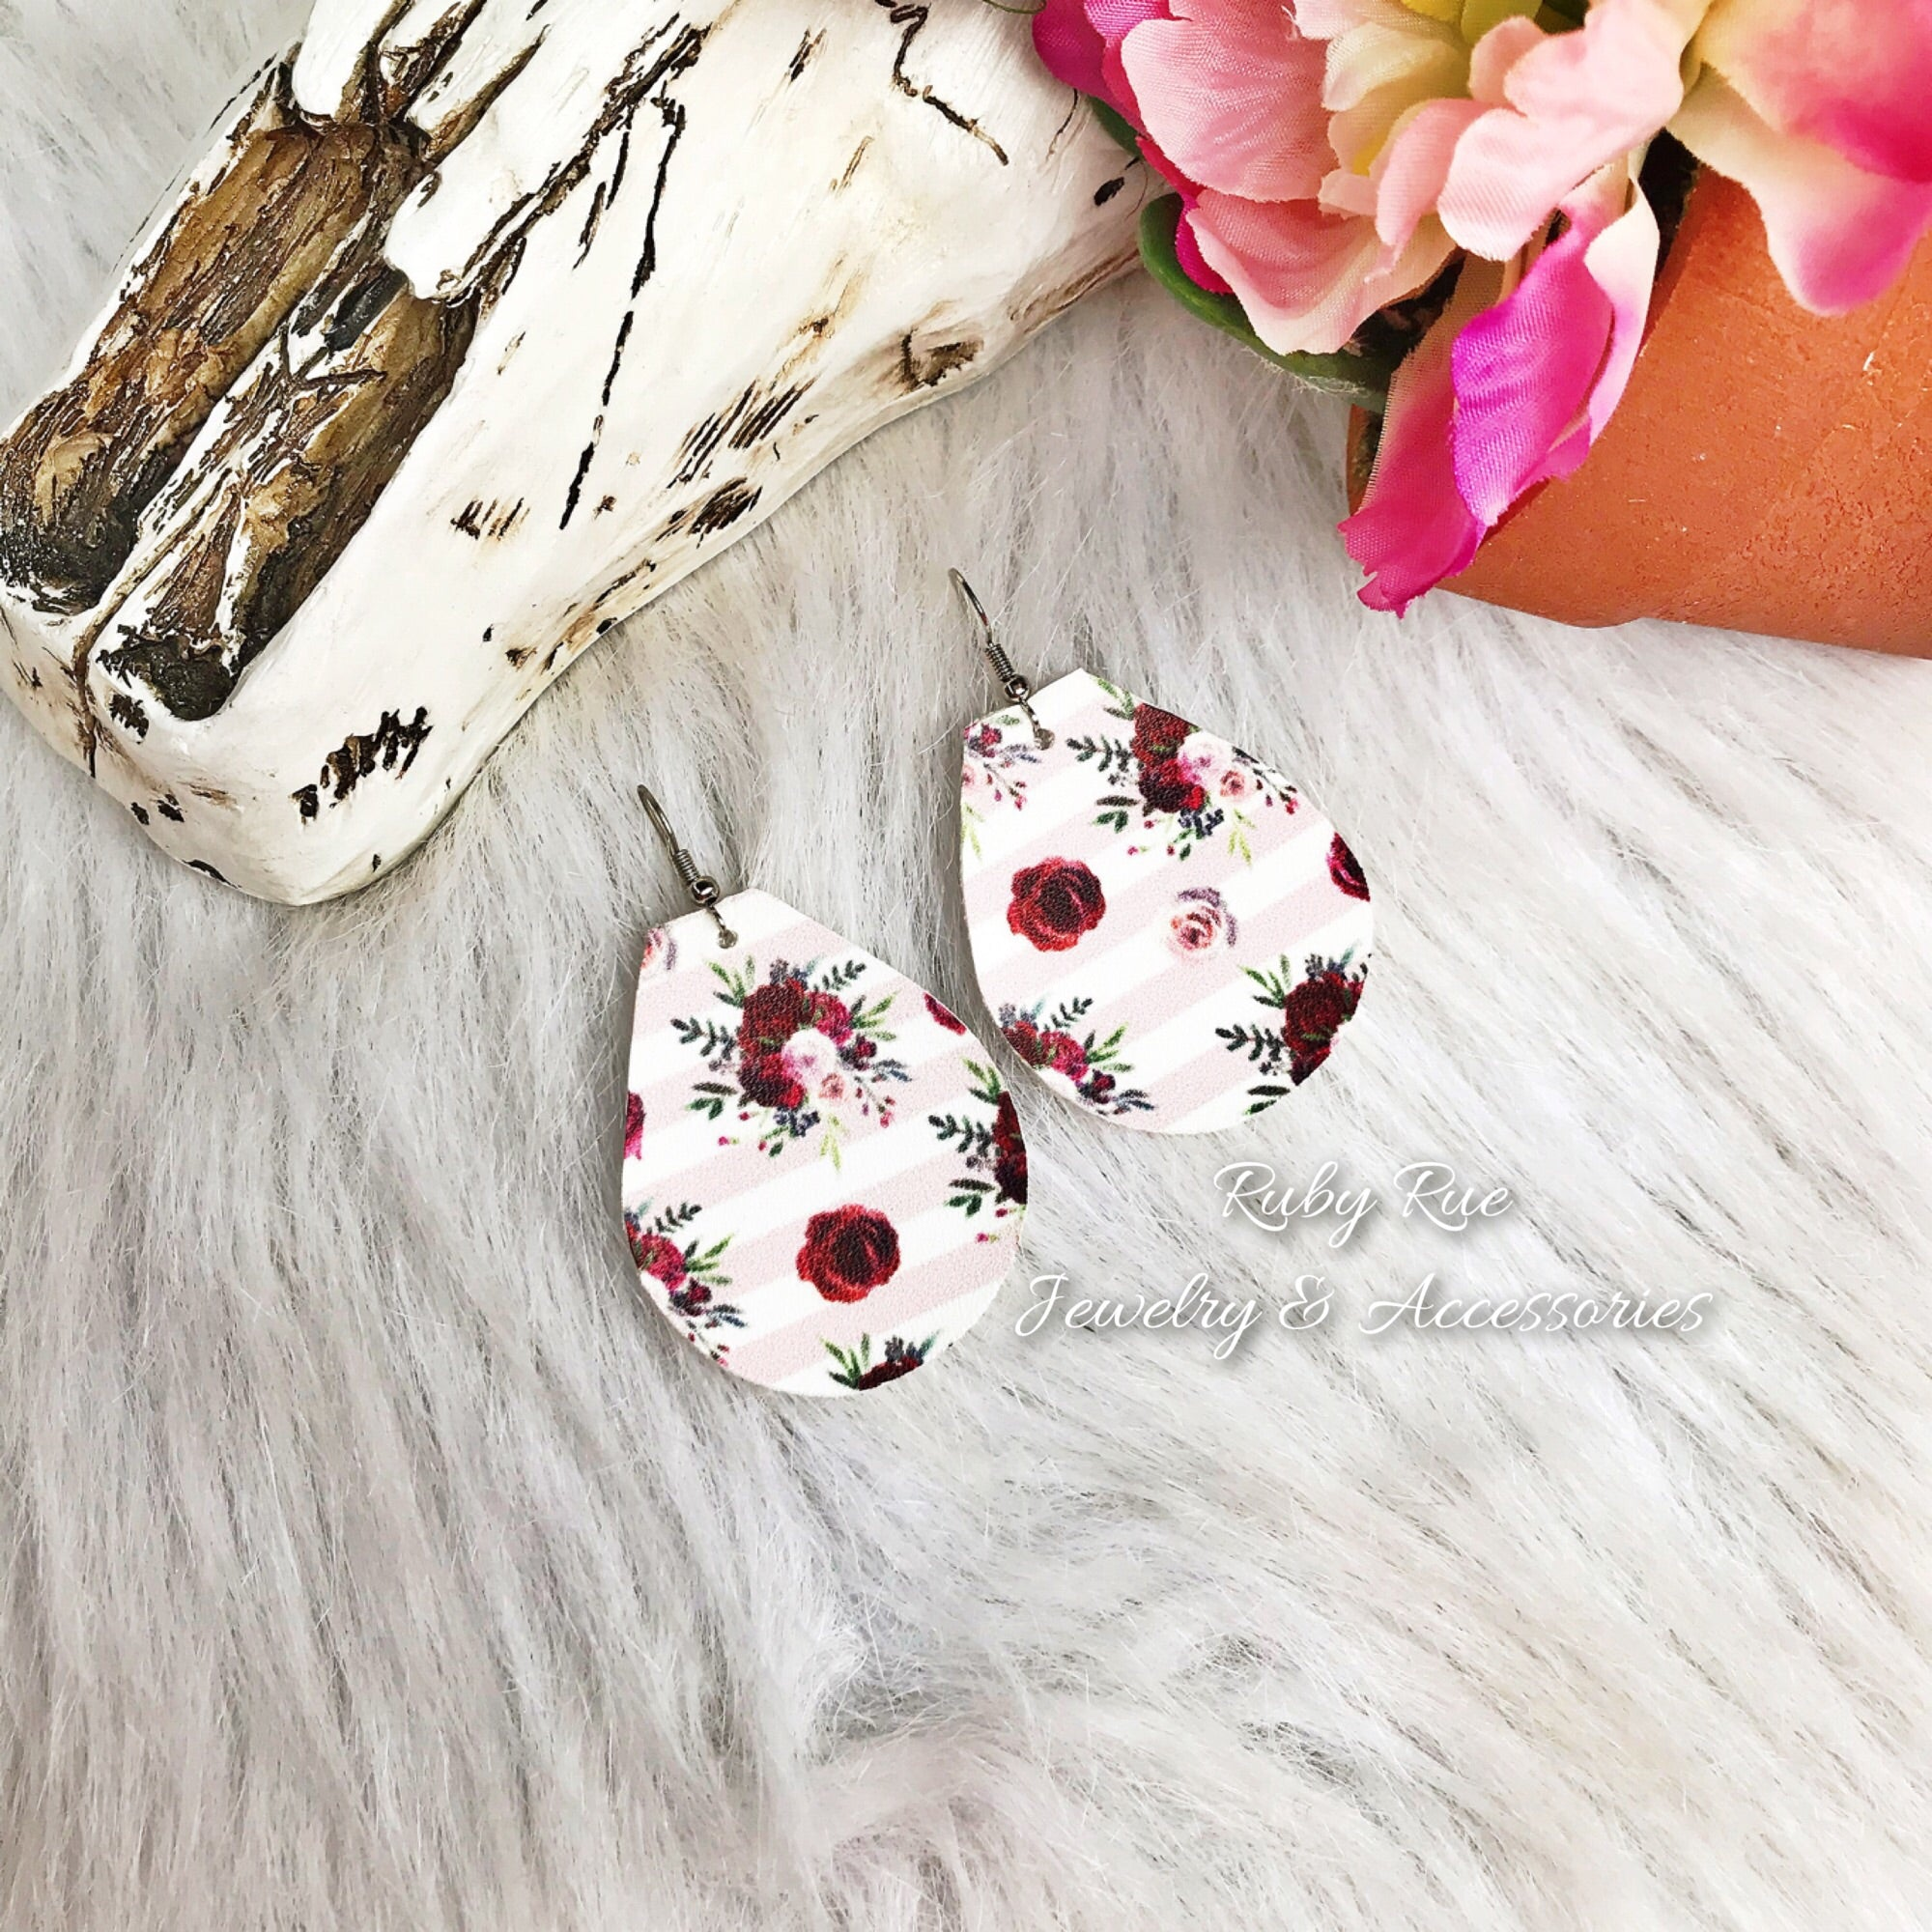 Plum & Pink Floral Leather Earrings - Ruby Rue Jewelry & Accessories